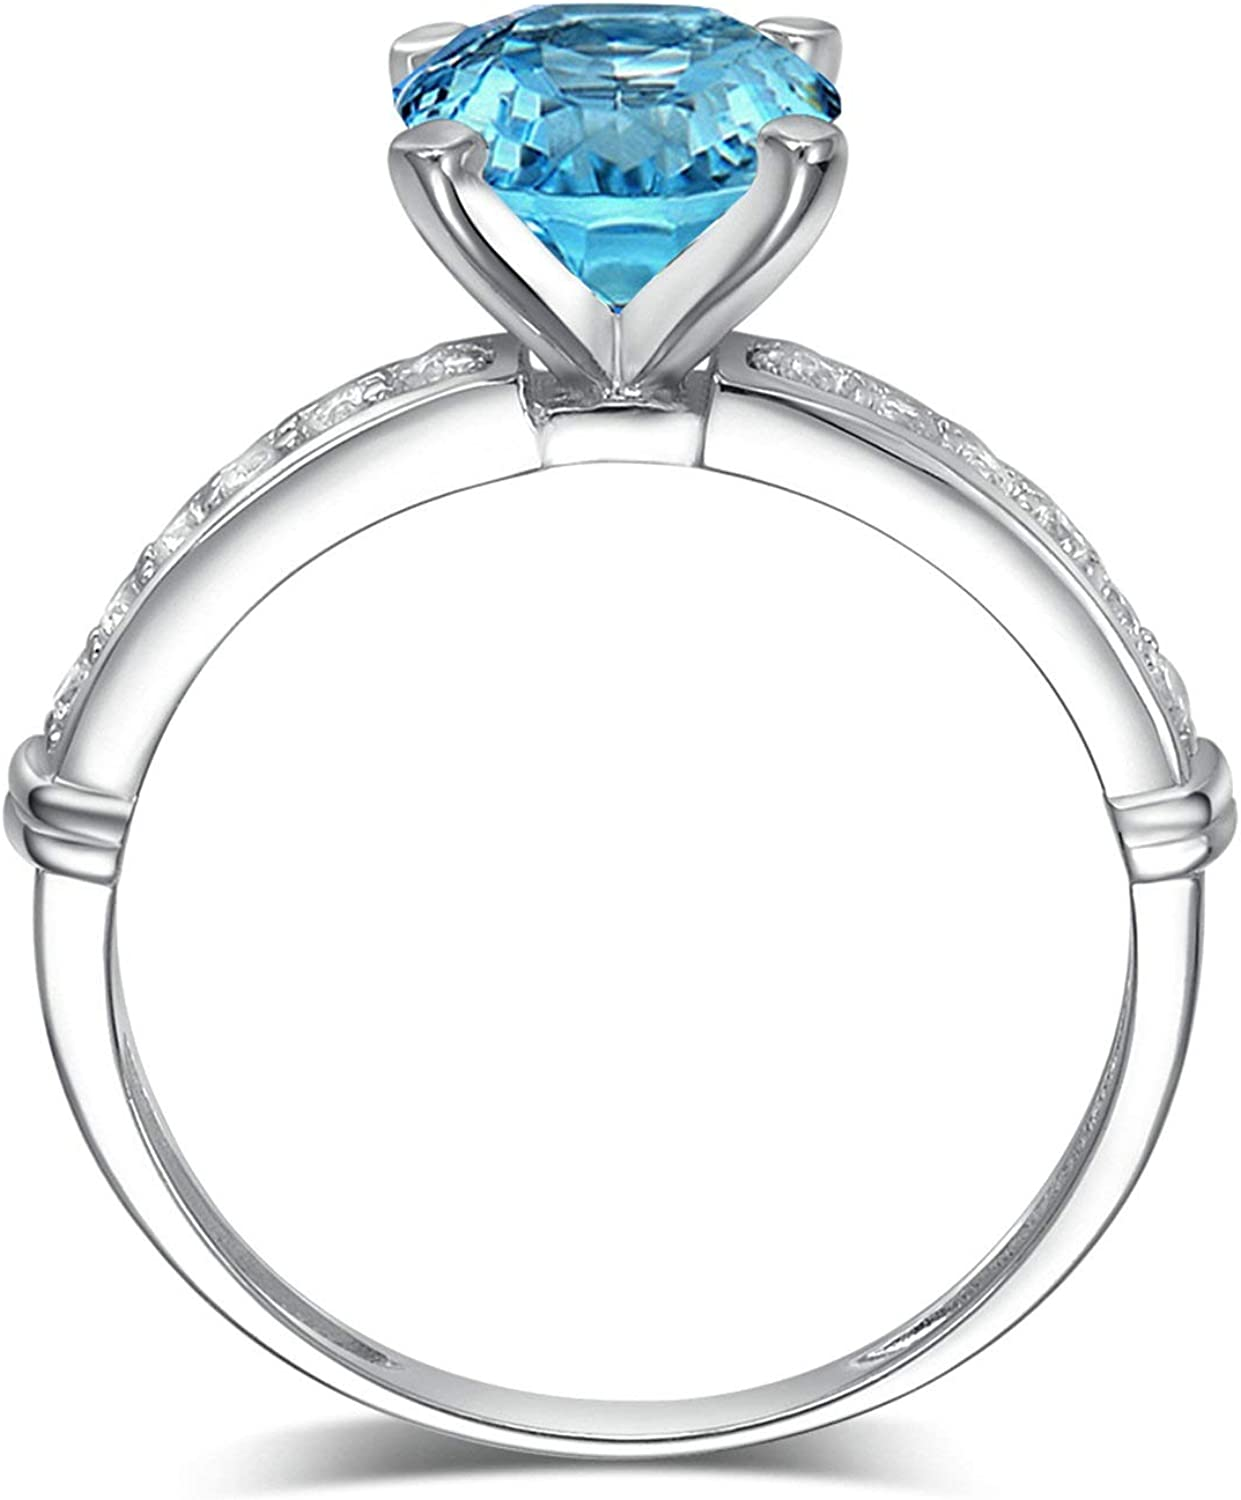 Aooaz Jewelry Silvers Material Promise Ring Round 0 Wedding Anniversary Ring